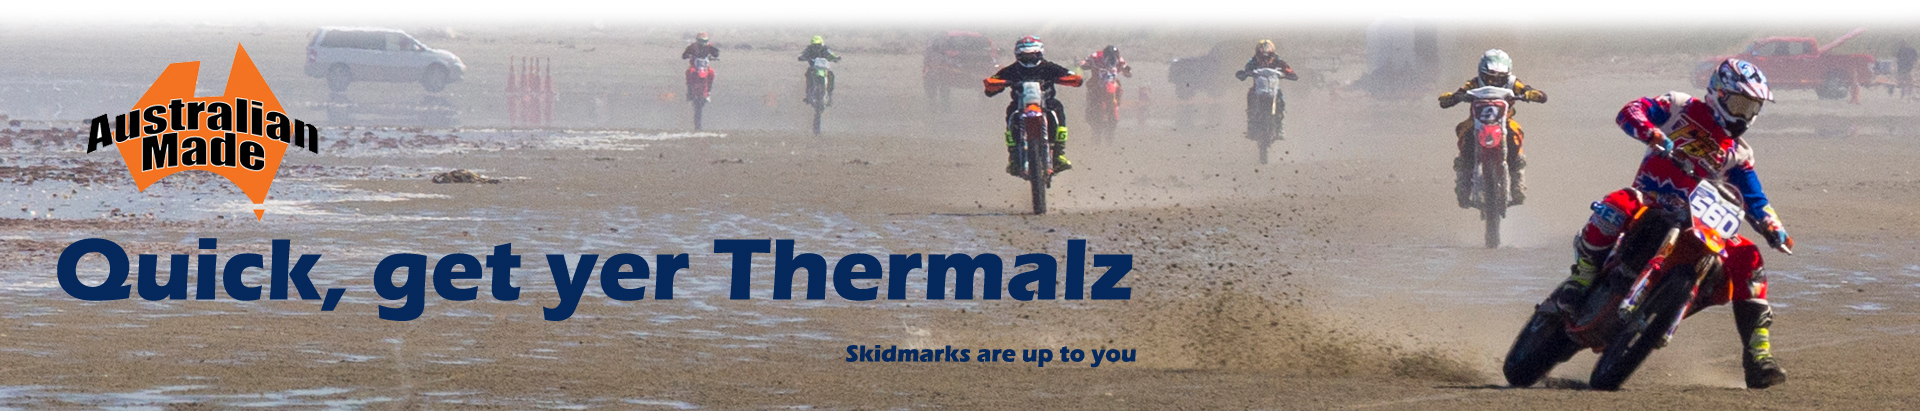 beach-race-thermalz.jpg